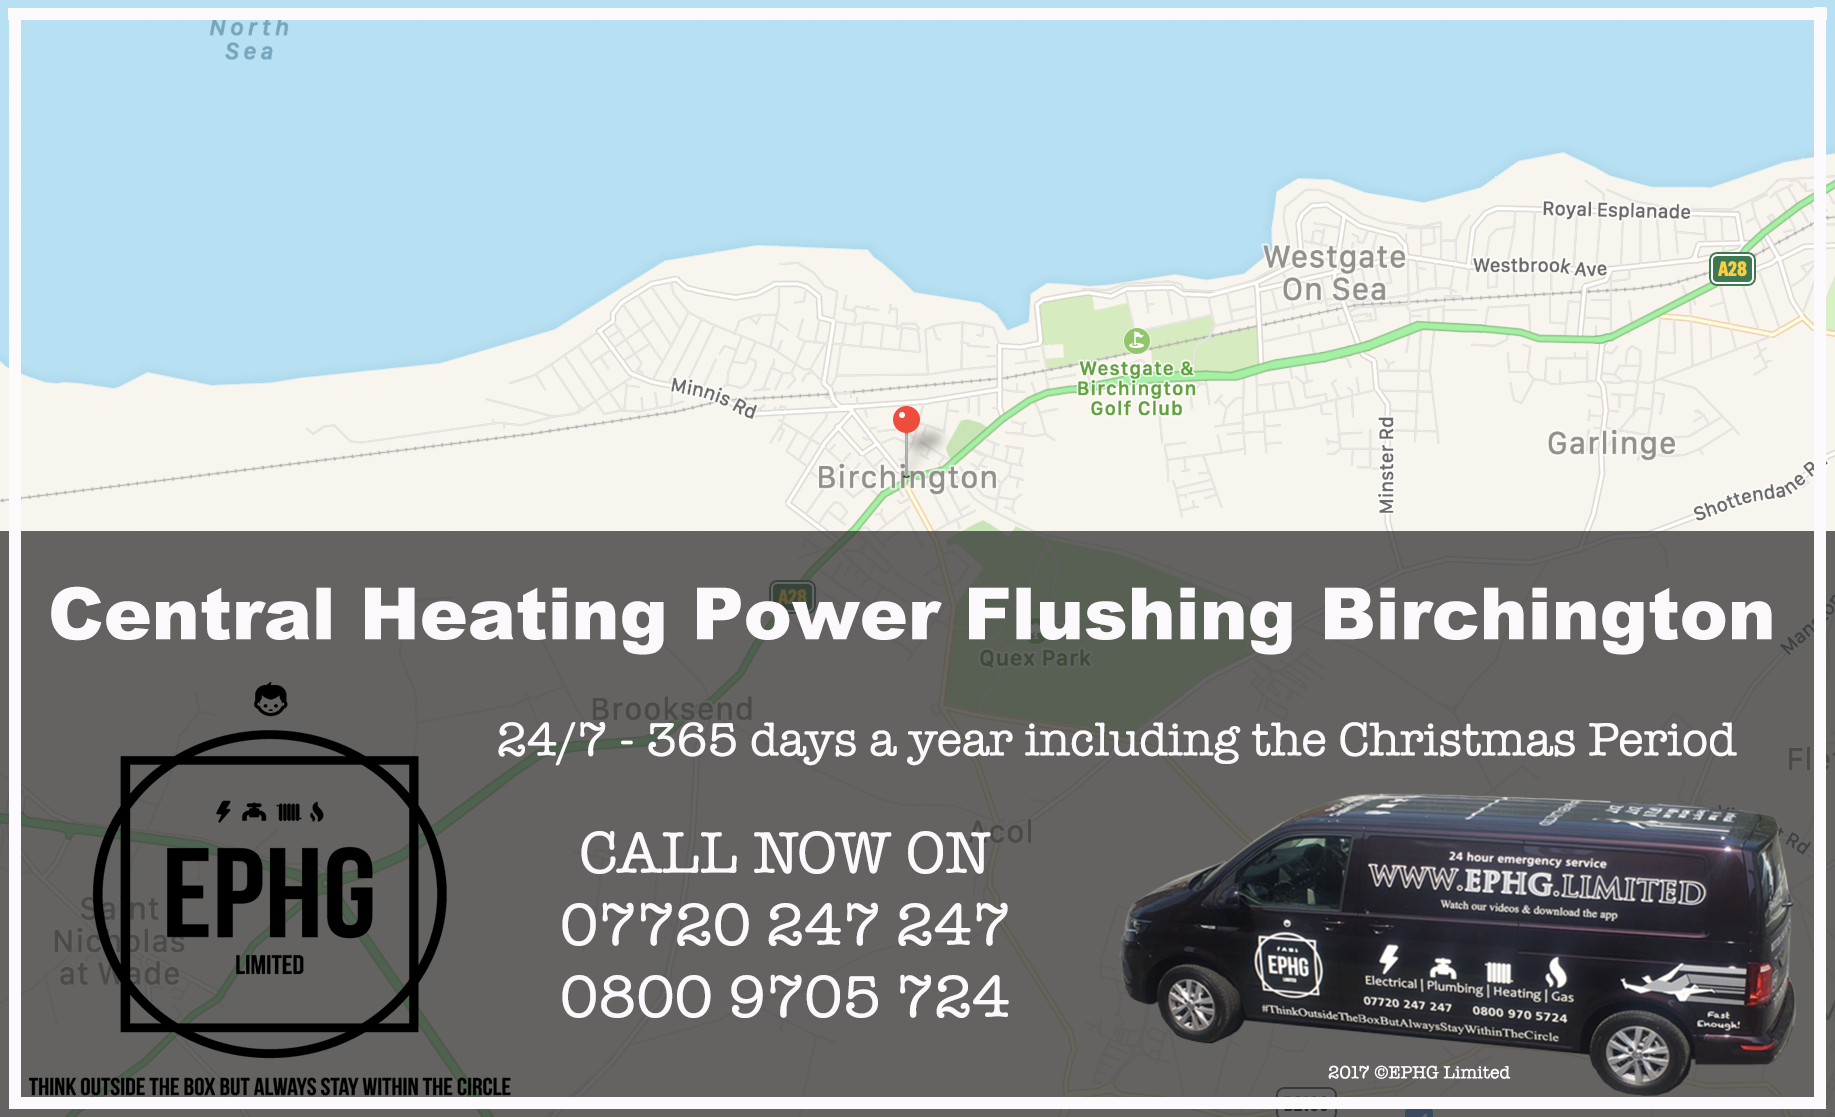 Central Heating Power Flush Birchington